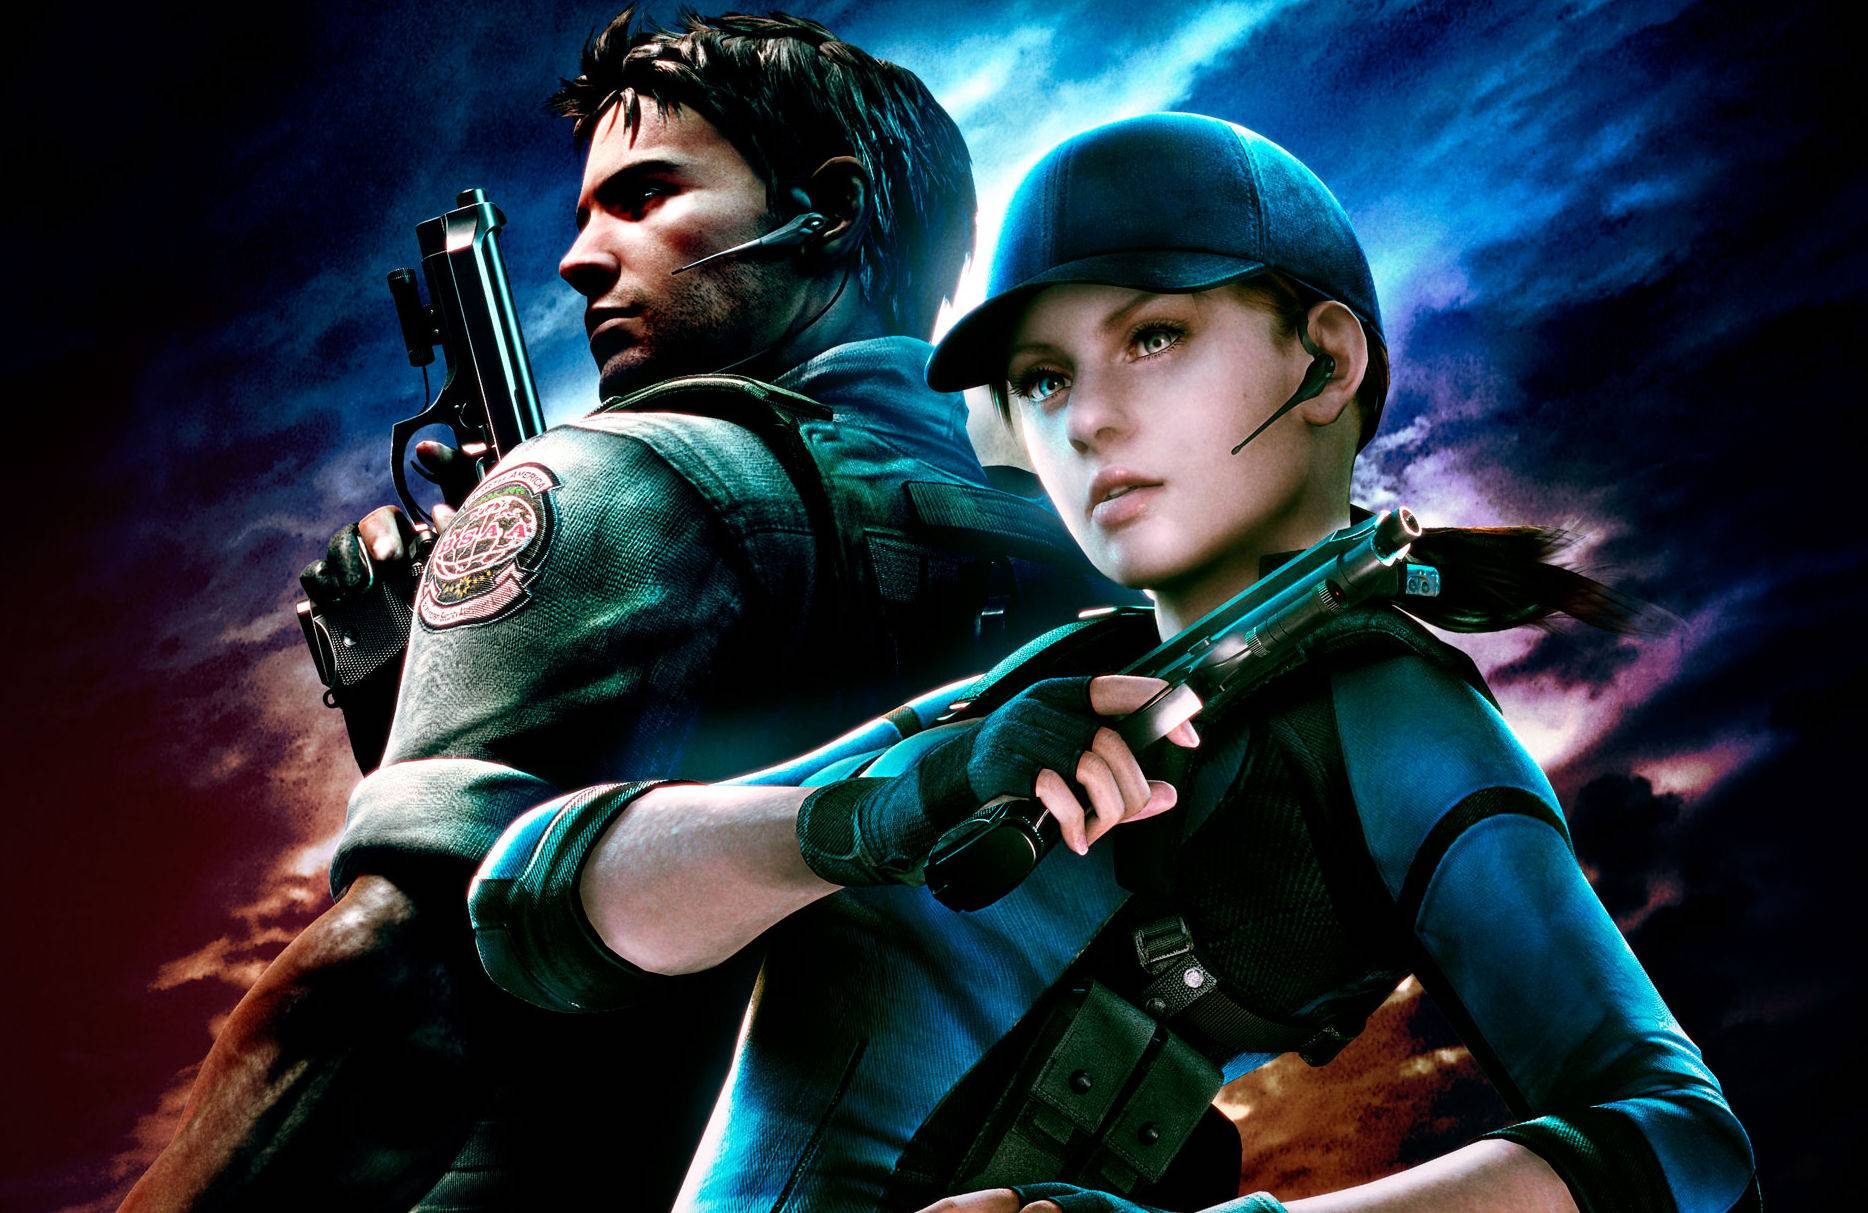 resident evil 5 alternative edition costumes video